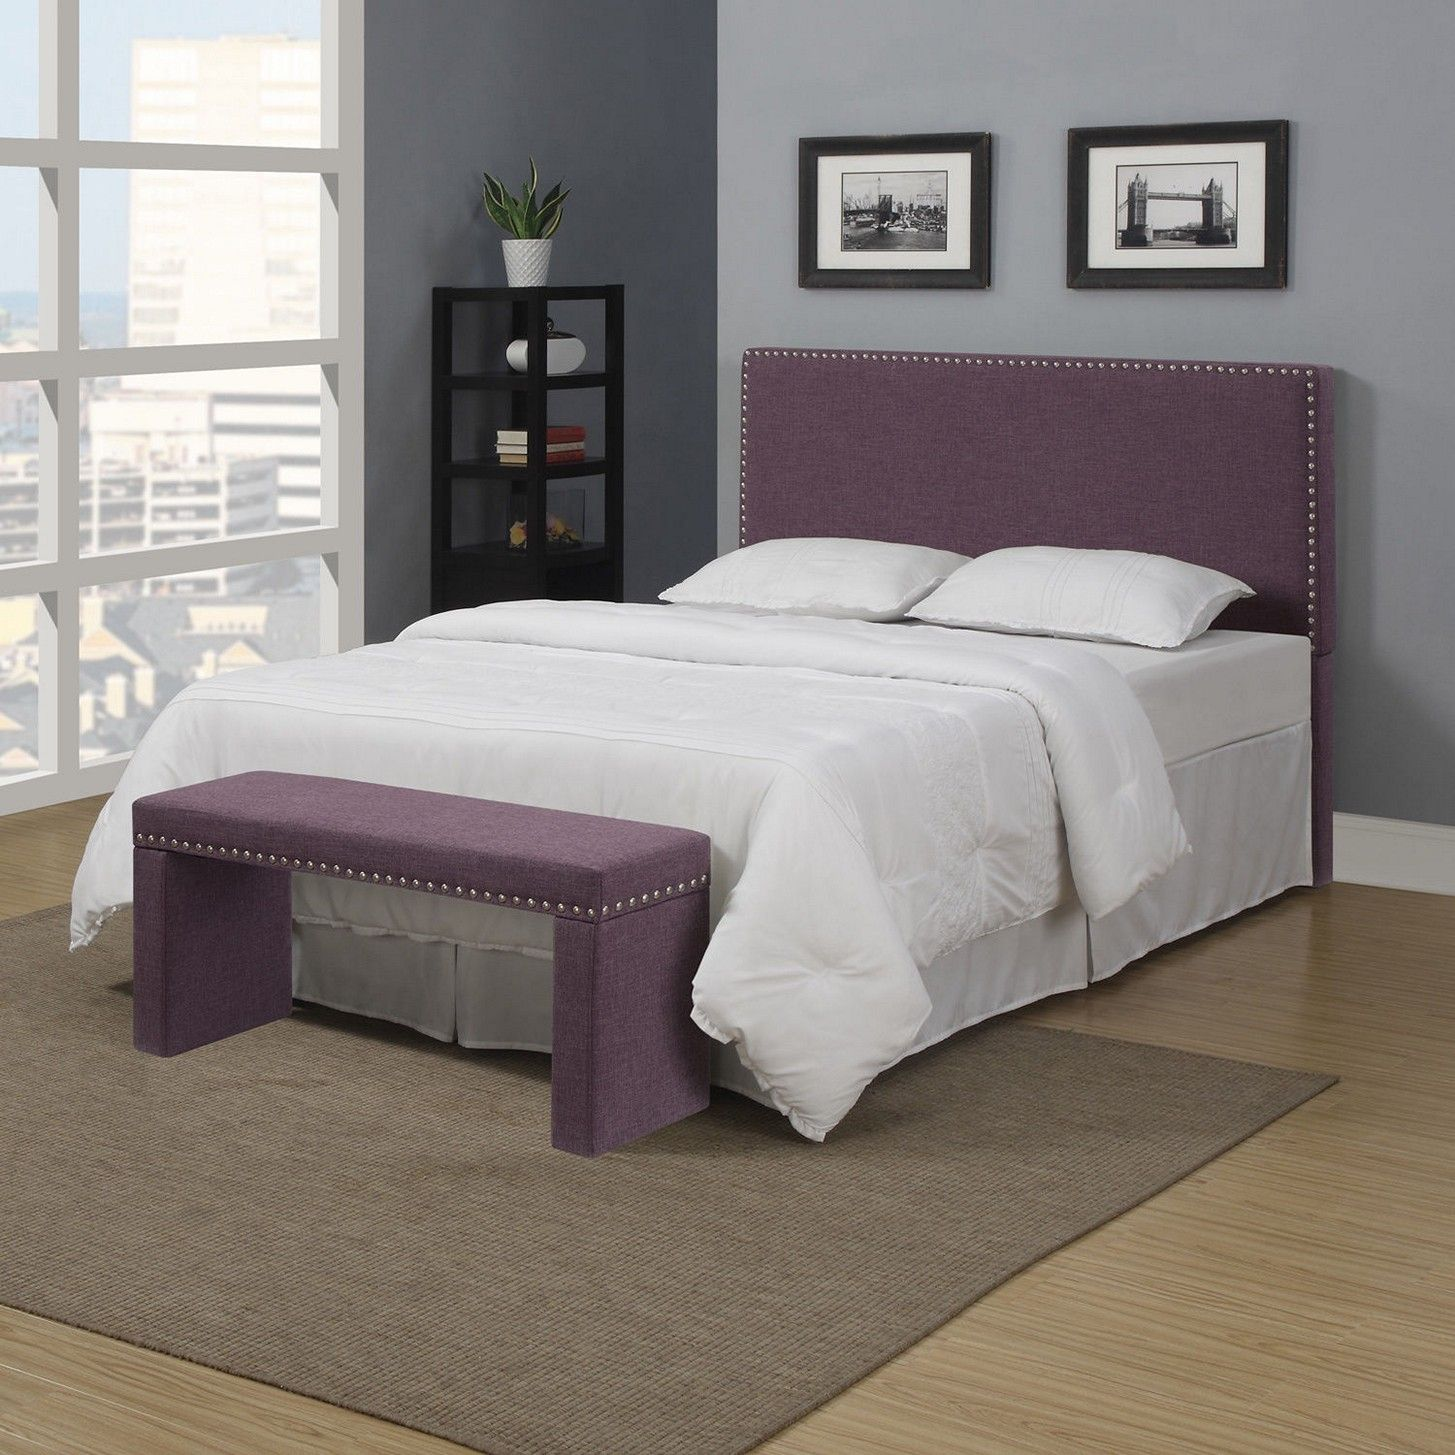 27 Perfect Purple Bedroom Design Inspiration for Teens and Adults